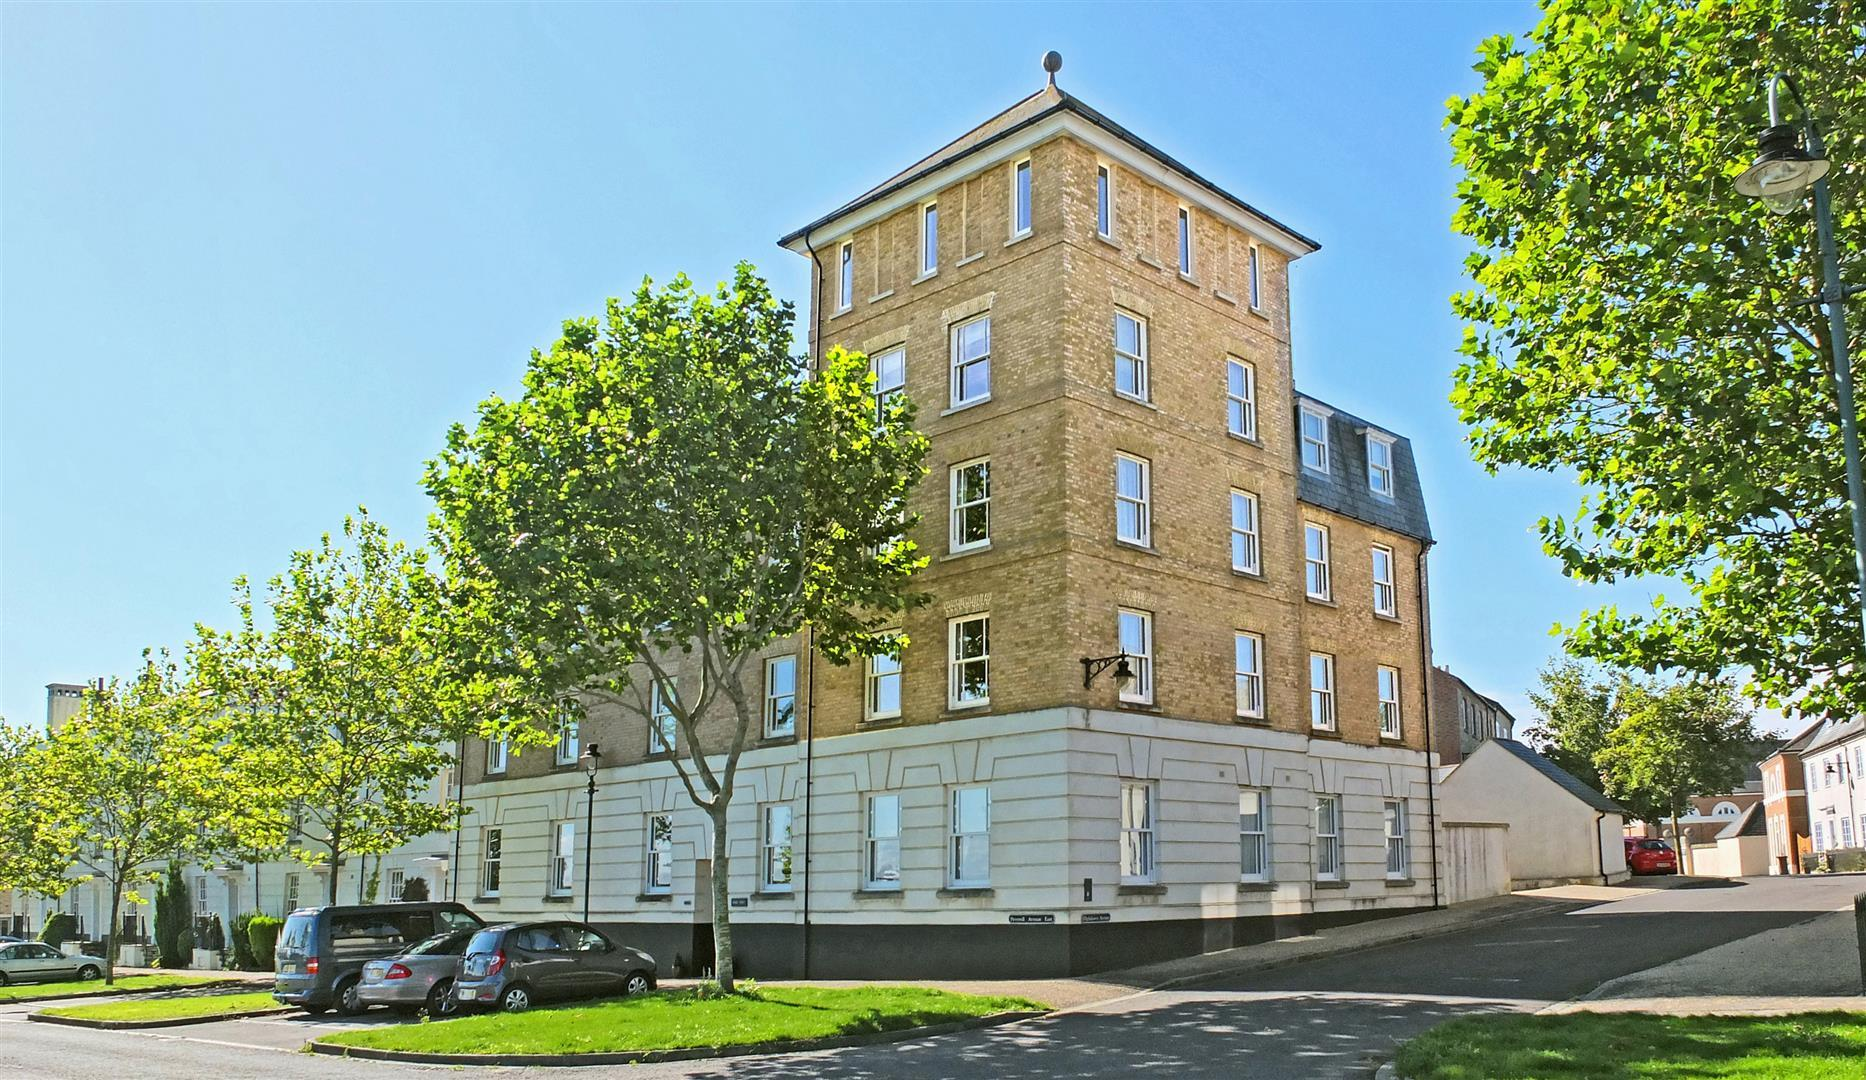 Peverell Avenue East, Poundbury, Dorchester DT1